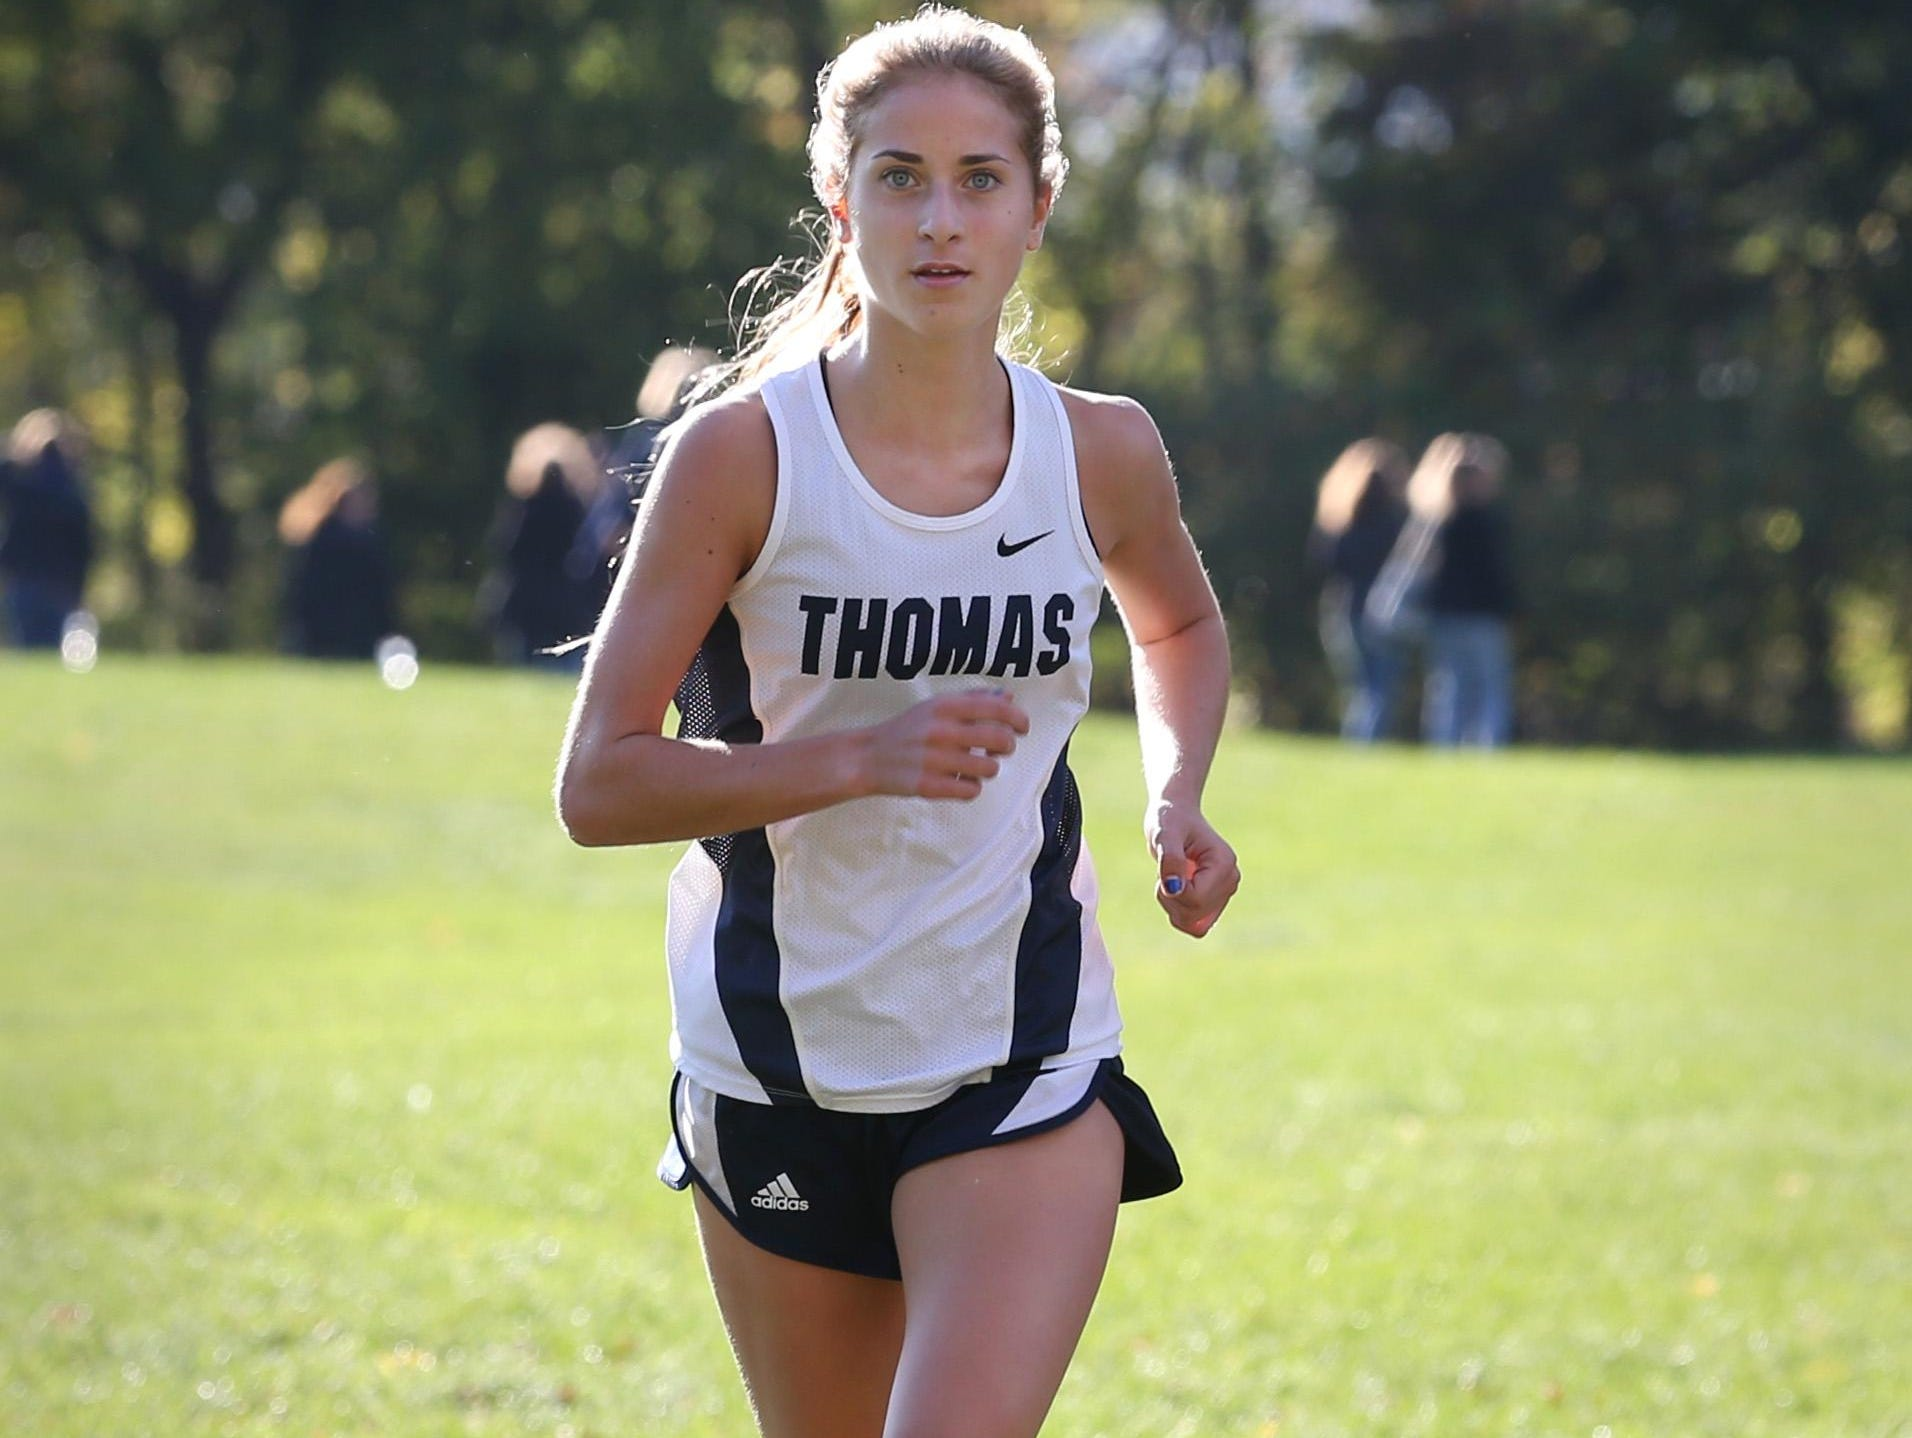 Amanda Vestri, Webster Thomas, runs away from the field early on her way to winning the girls race during their Section V cross country meet at Mendon Ponds Park in Mendon on Thursday.